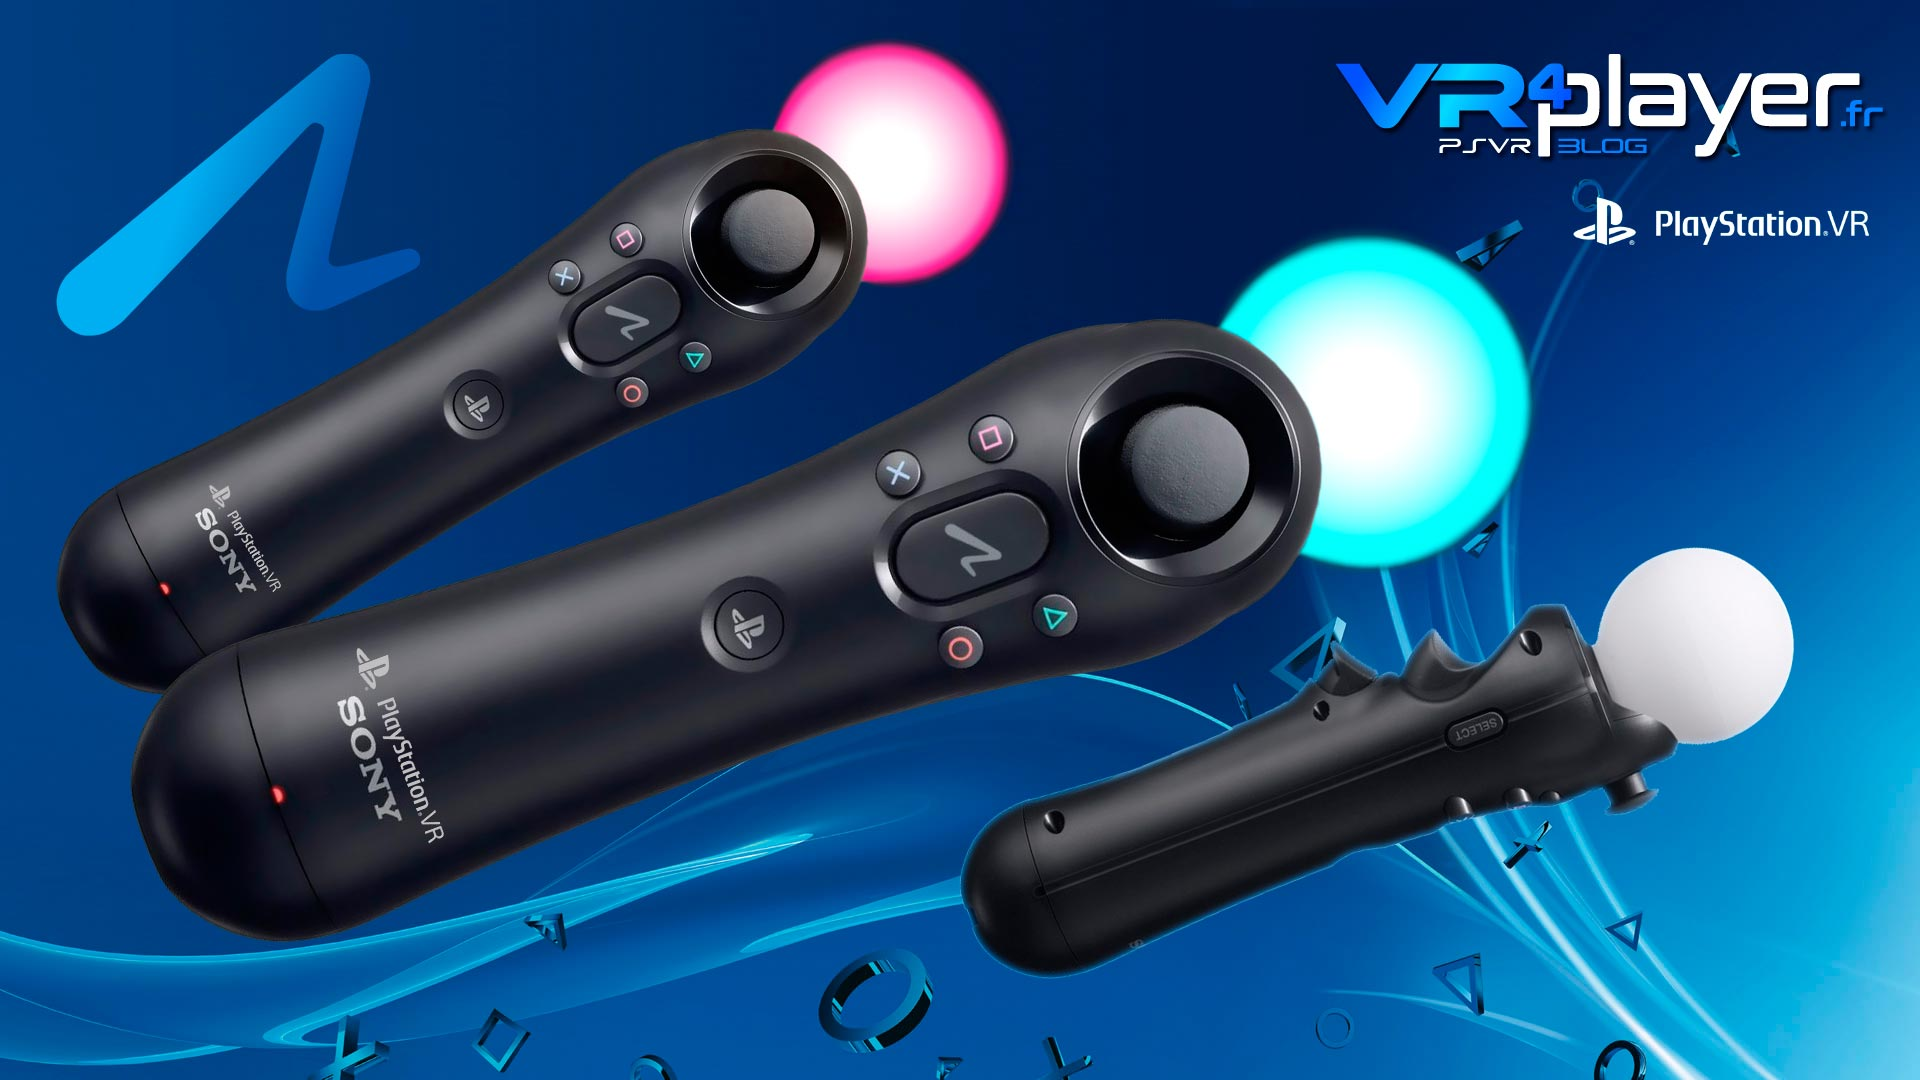 PS Move 2 - Vr4player